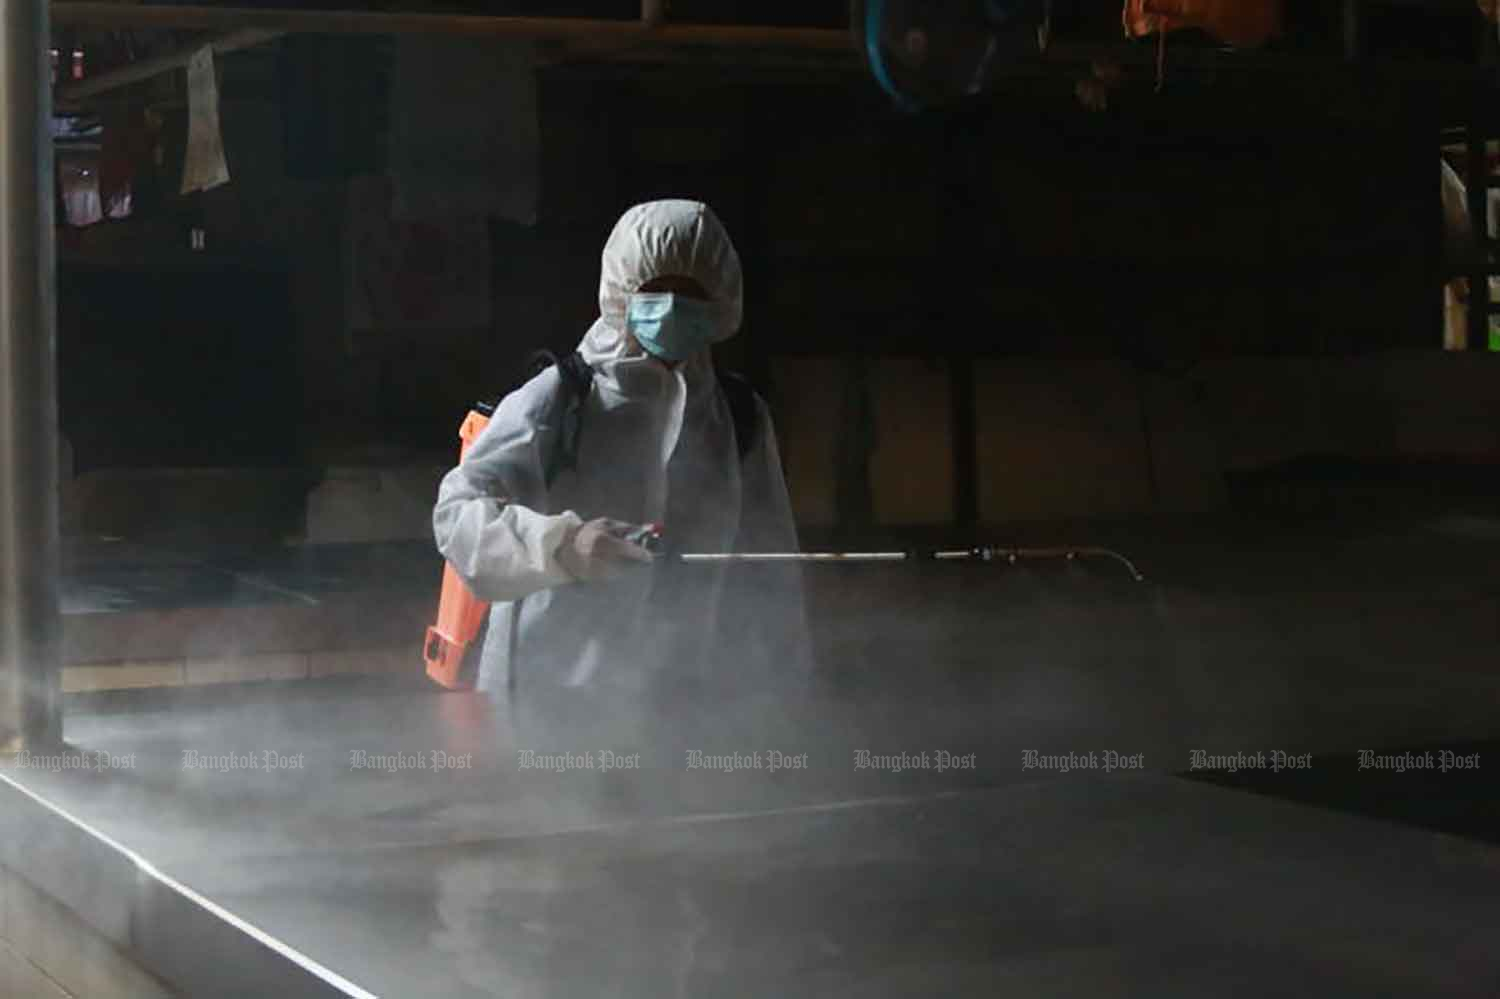 A disease control worker sprays disinfectant to prevent a Covid-19 outbreak at a wholesale market in Muang district of Samut Prakan on Monday. (Photo: Somchai Poomlard)